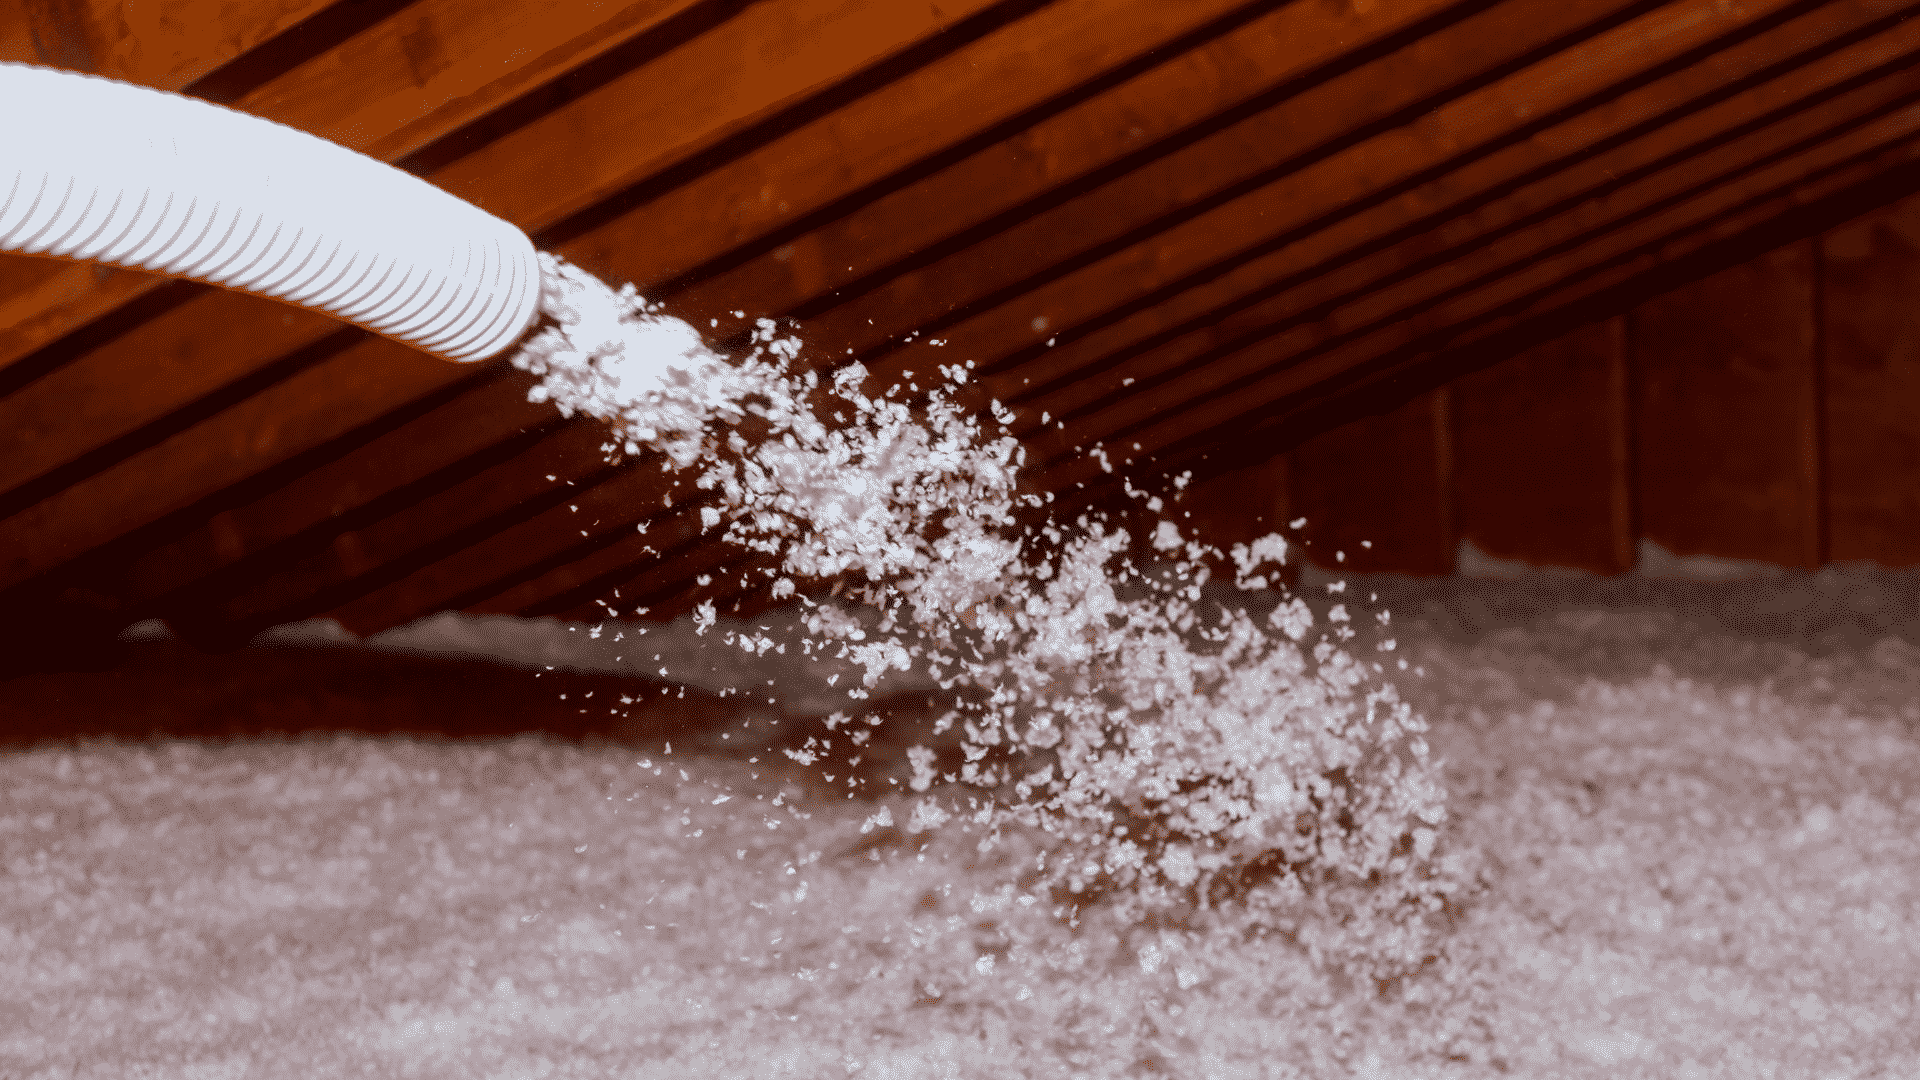 types of attic insulation-blown-in